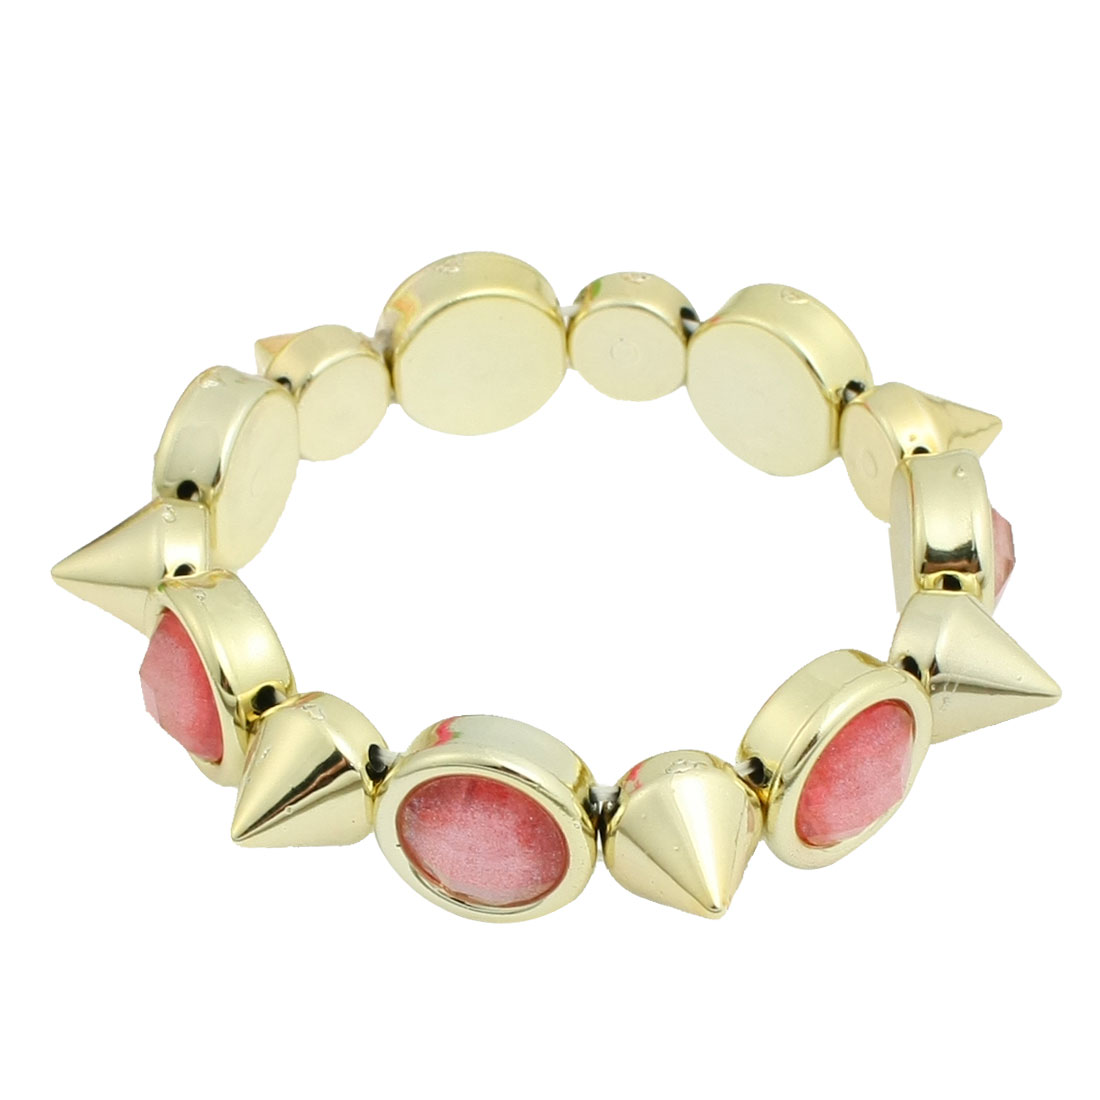 Girls Plastic Punk Rock Spike Cone Studs Beads Inlaid Stretch Bracelet Gold Tone Pink